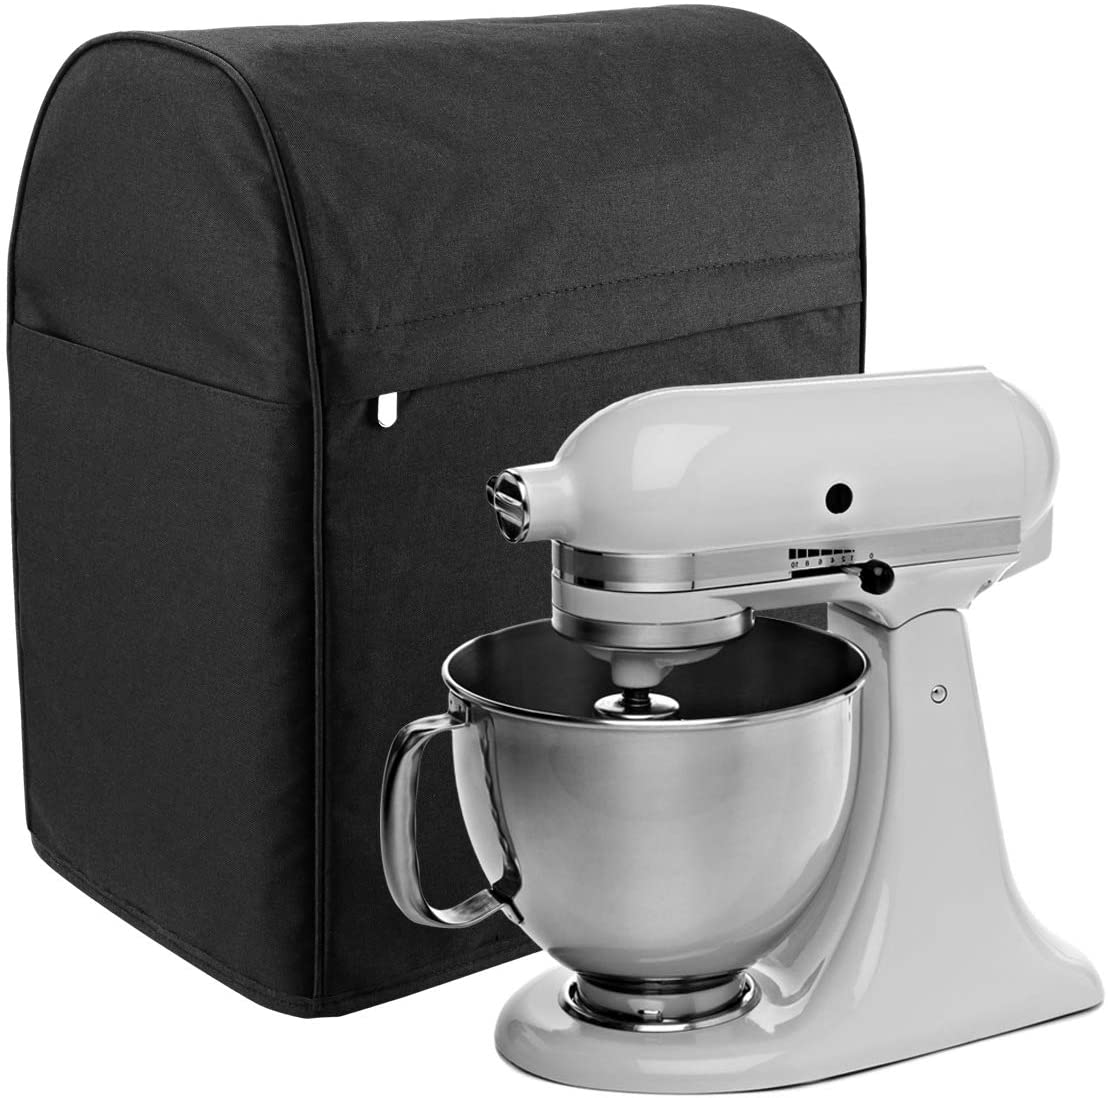 Stand Mixer Dust Cover, Mixer Dust&Fingerprint Protection Cover With Zipper & Open Pockets Mixer Protection Cover Kitchen Small Appliance Cover,Machine Washable(Black)